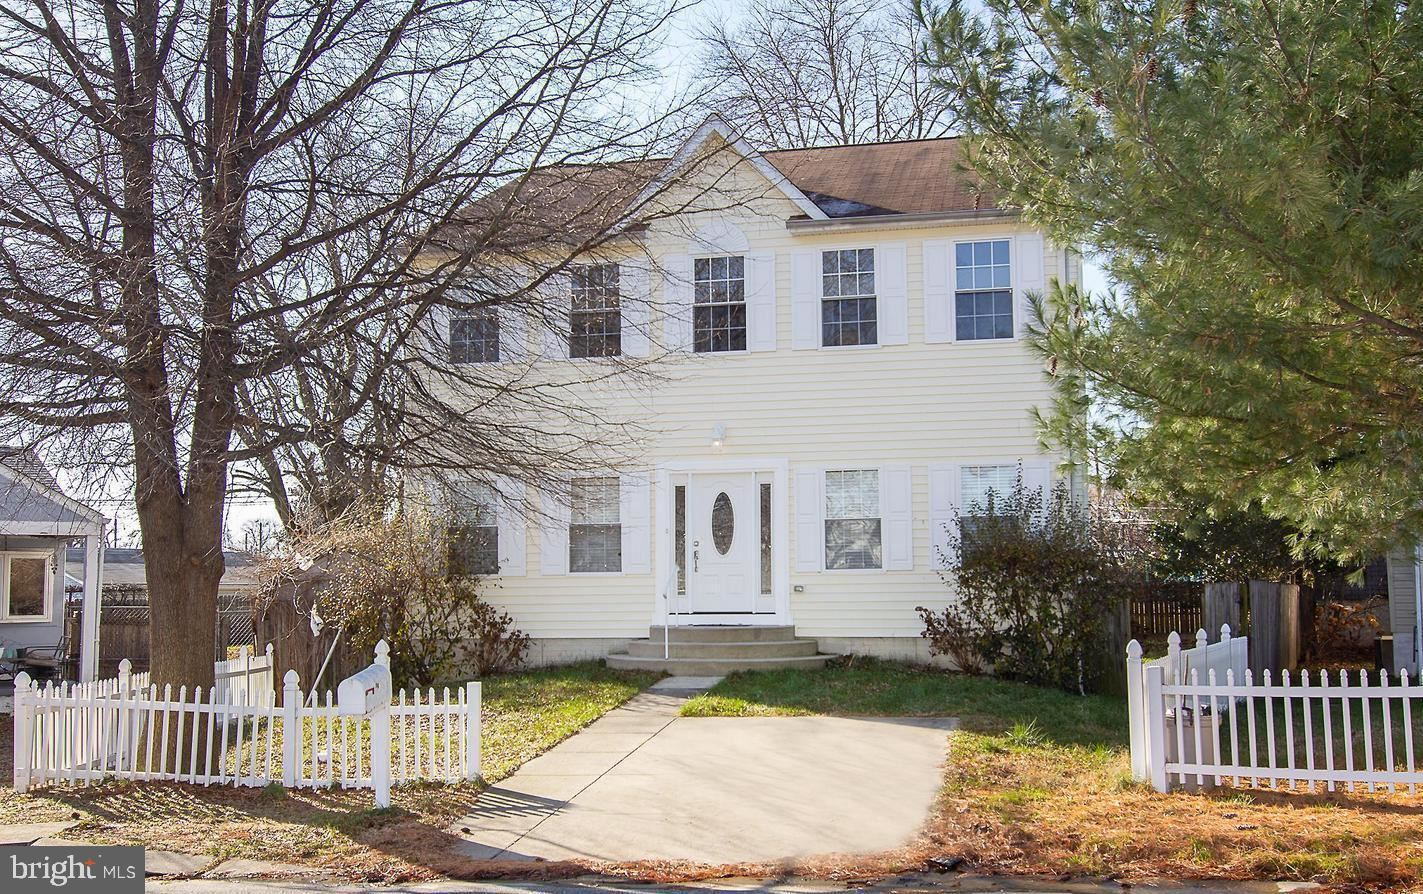 10 RIGHT AILERON ST, Baltimore, MD 21220 - #: MDBC496696